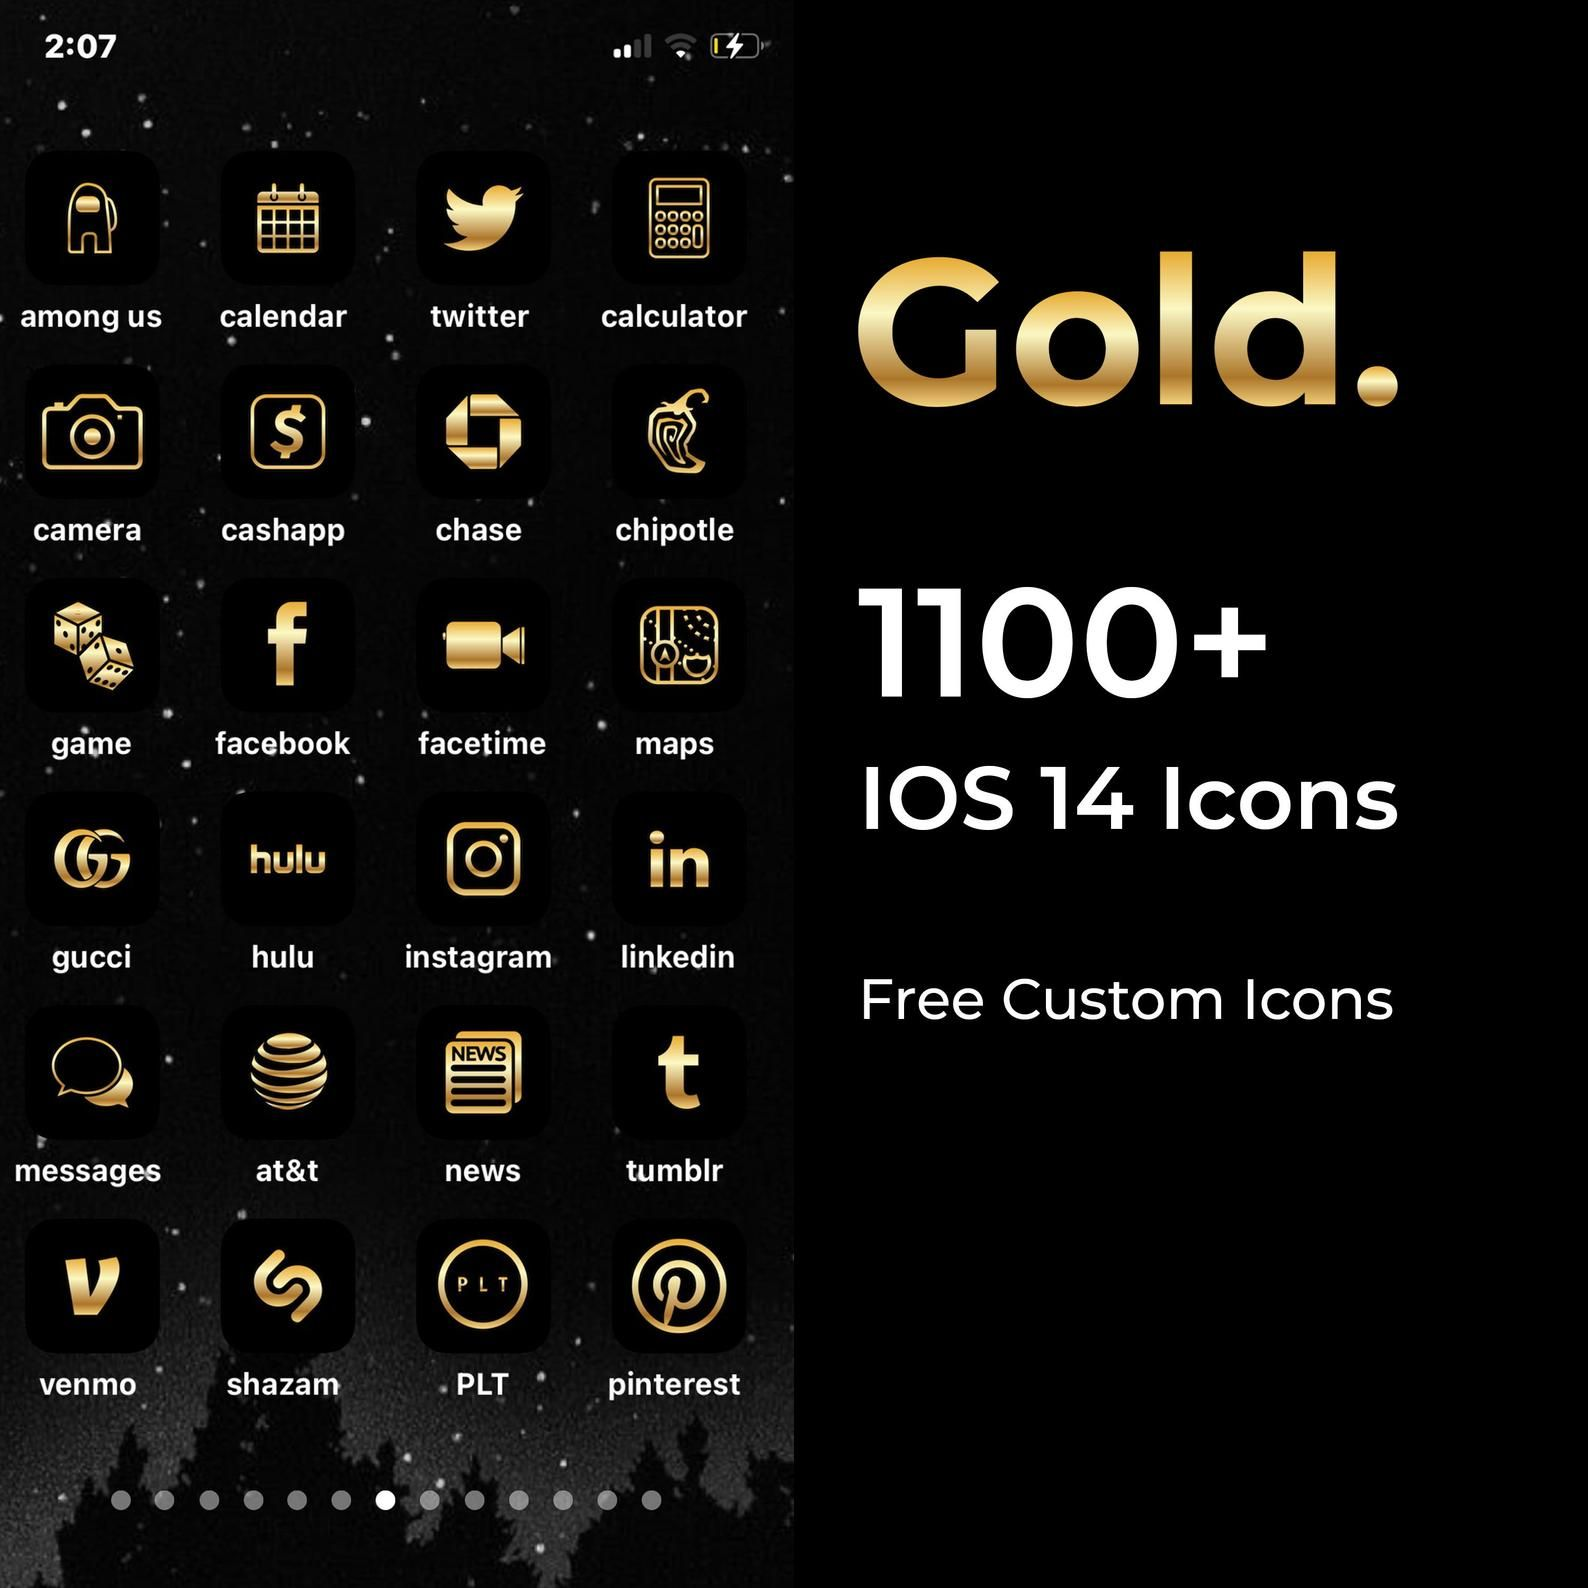 5000 Gold Iphone Ios 14 App Icons Pack Gold Icon Aesthetic Black Background Social Media Phone Ios14 Personalised Home Screen Widget App Icon Gold Iphone Gold App